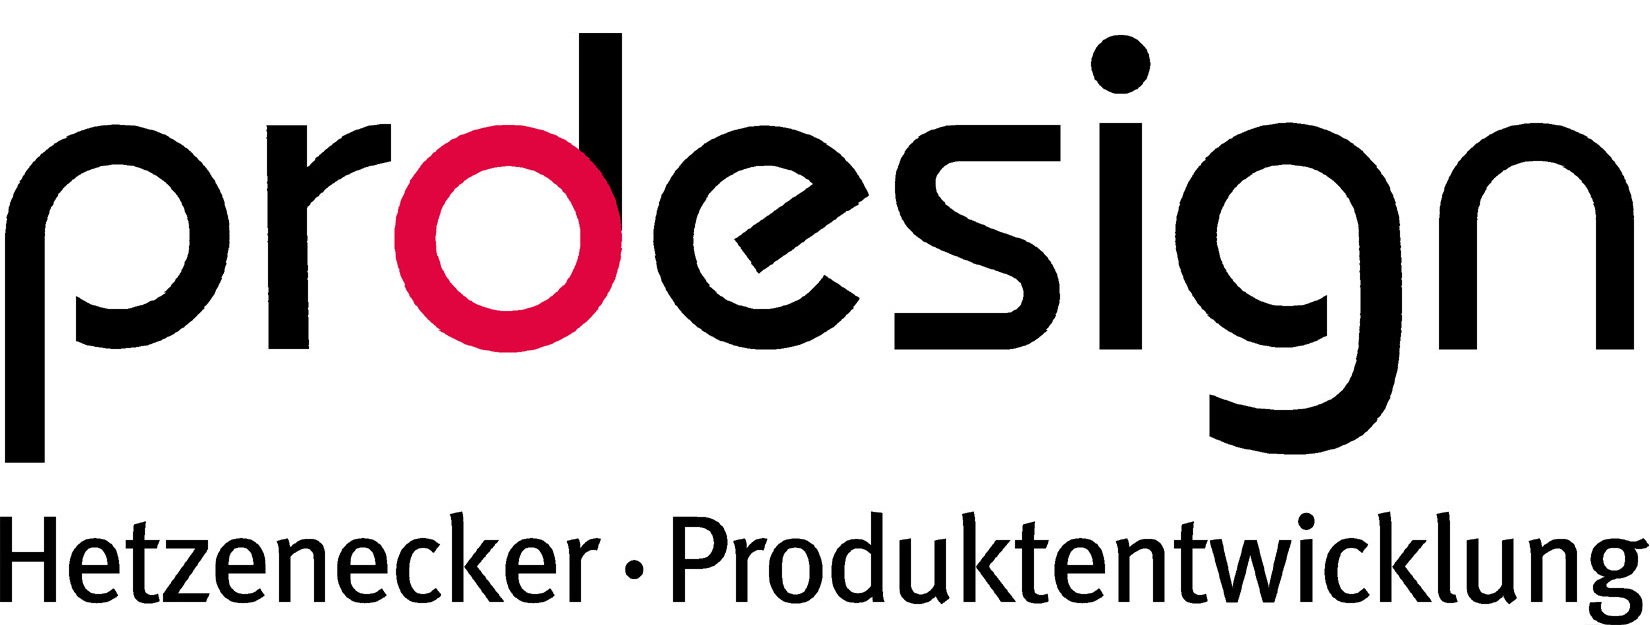 Industriedesign